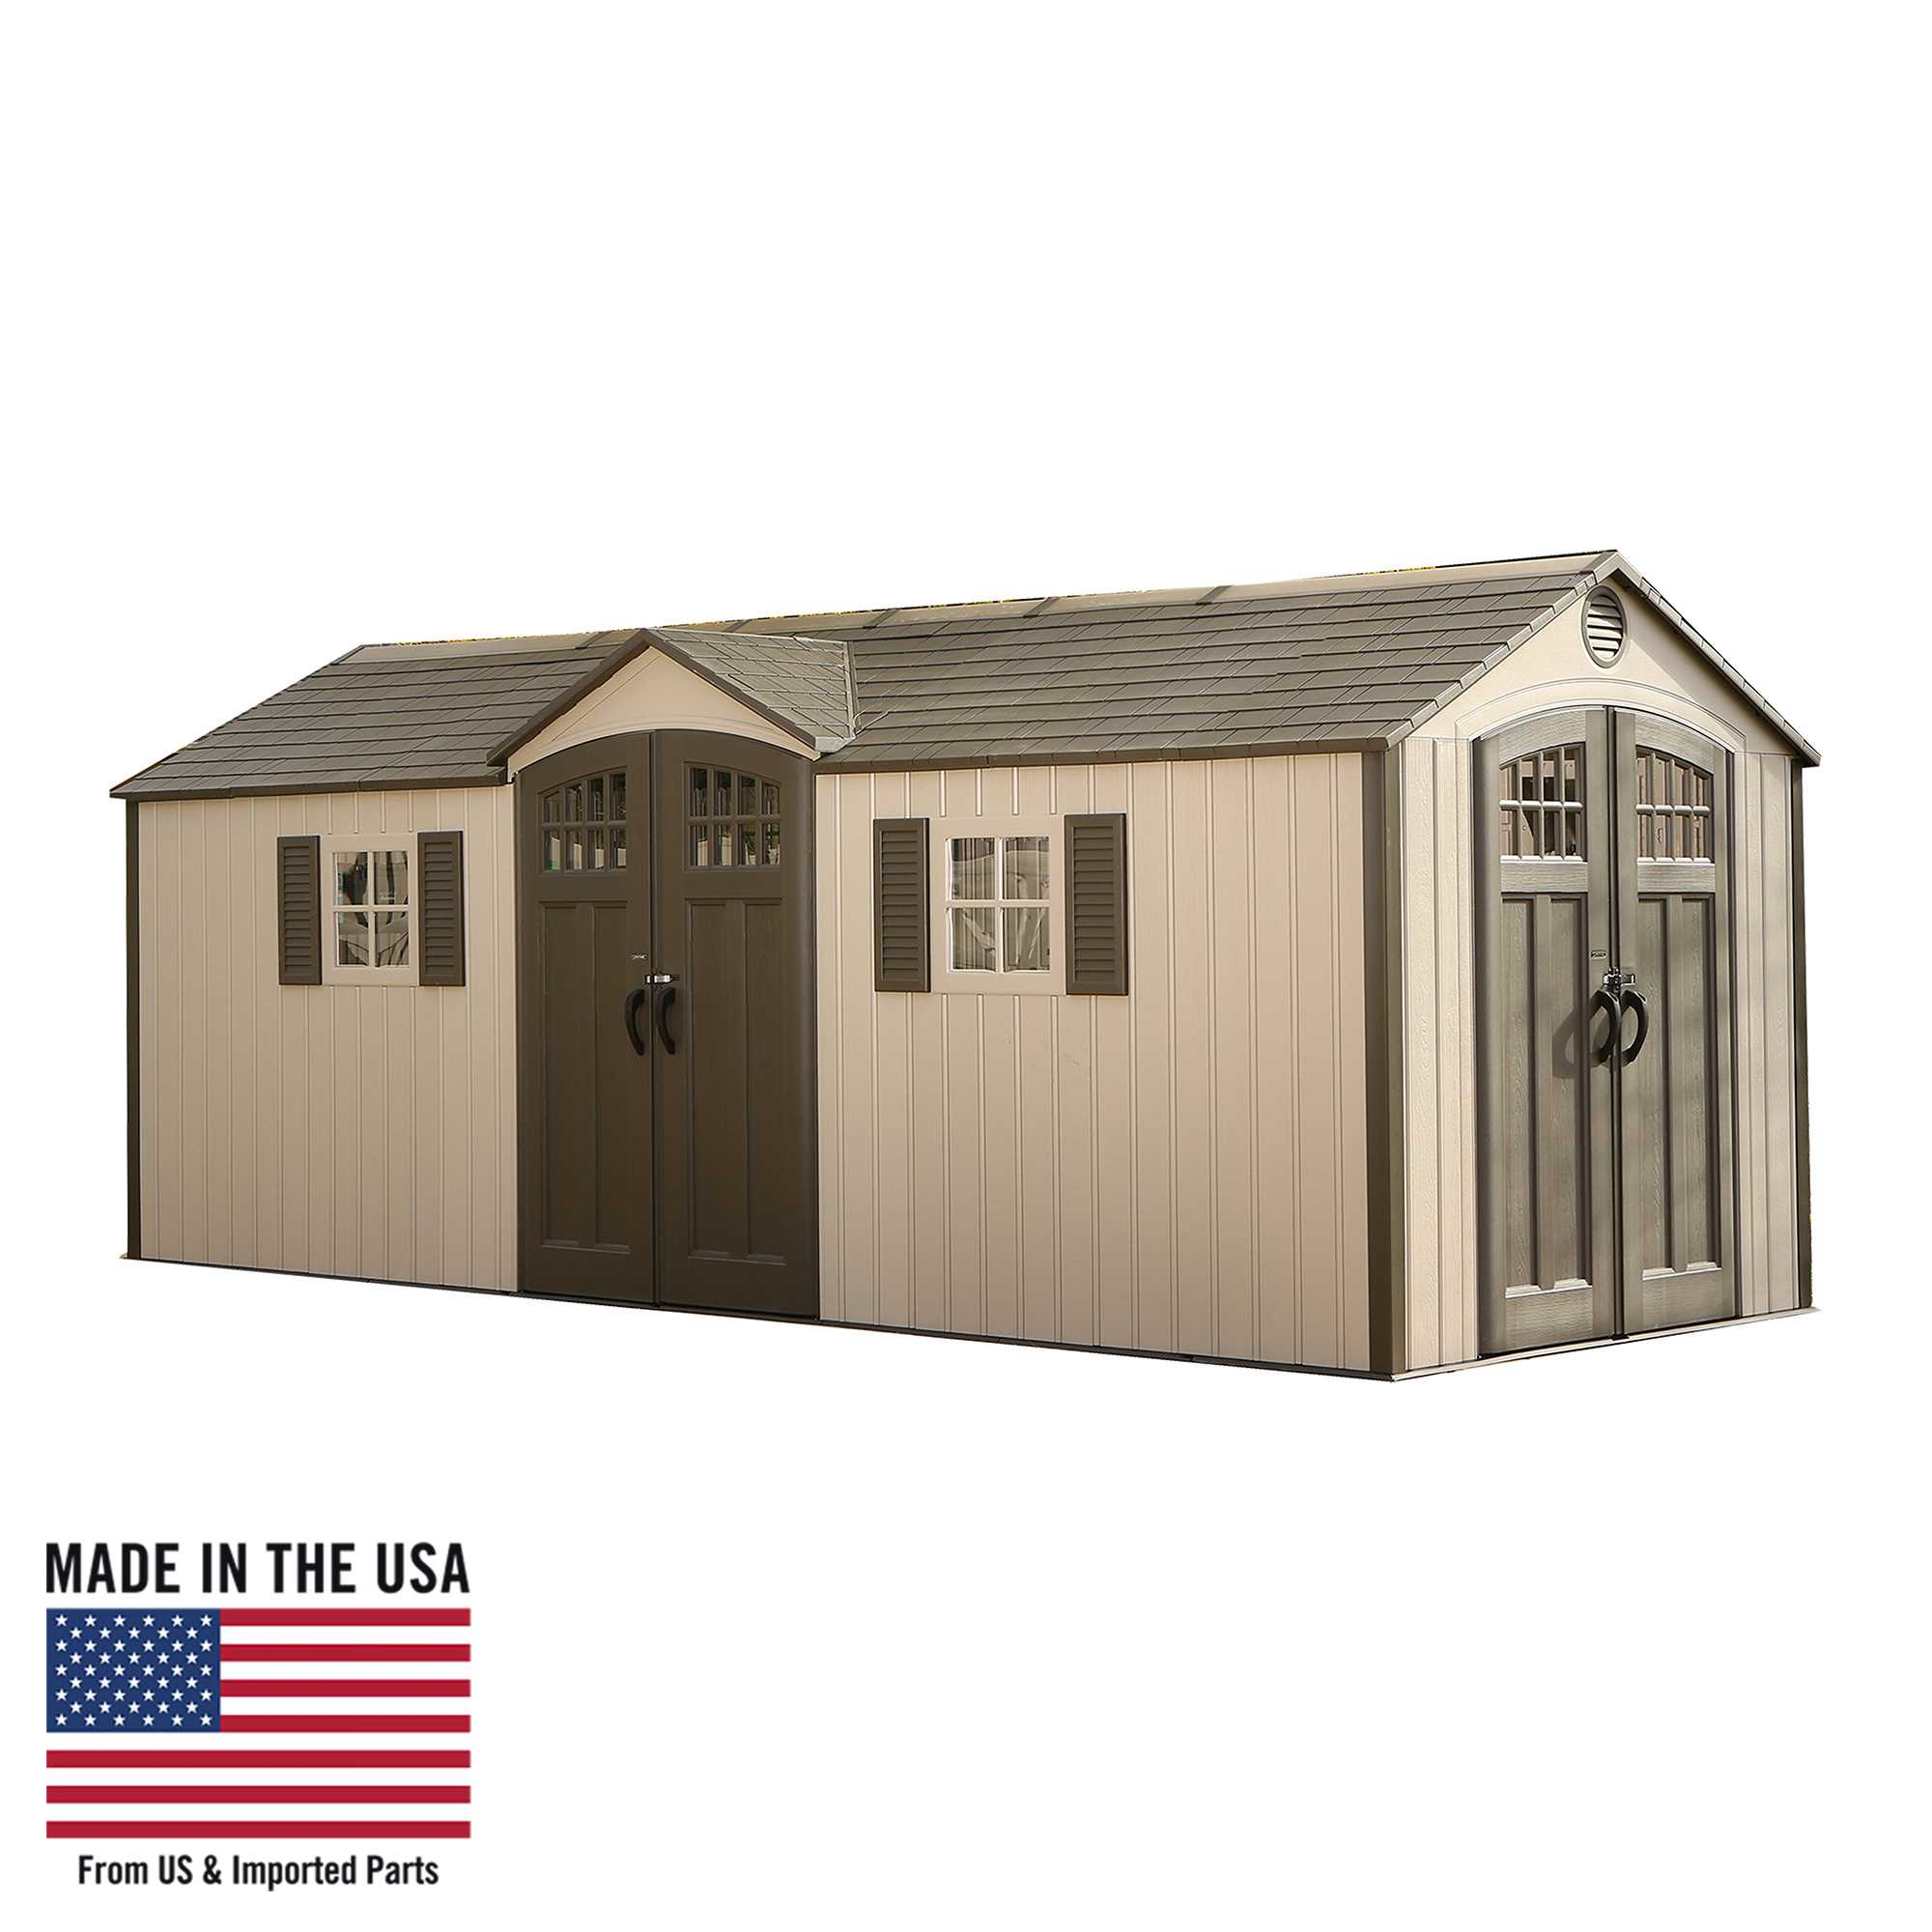 Lifetime 20 Ft. x 8 Ft. Outdoor Storage Shed